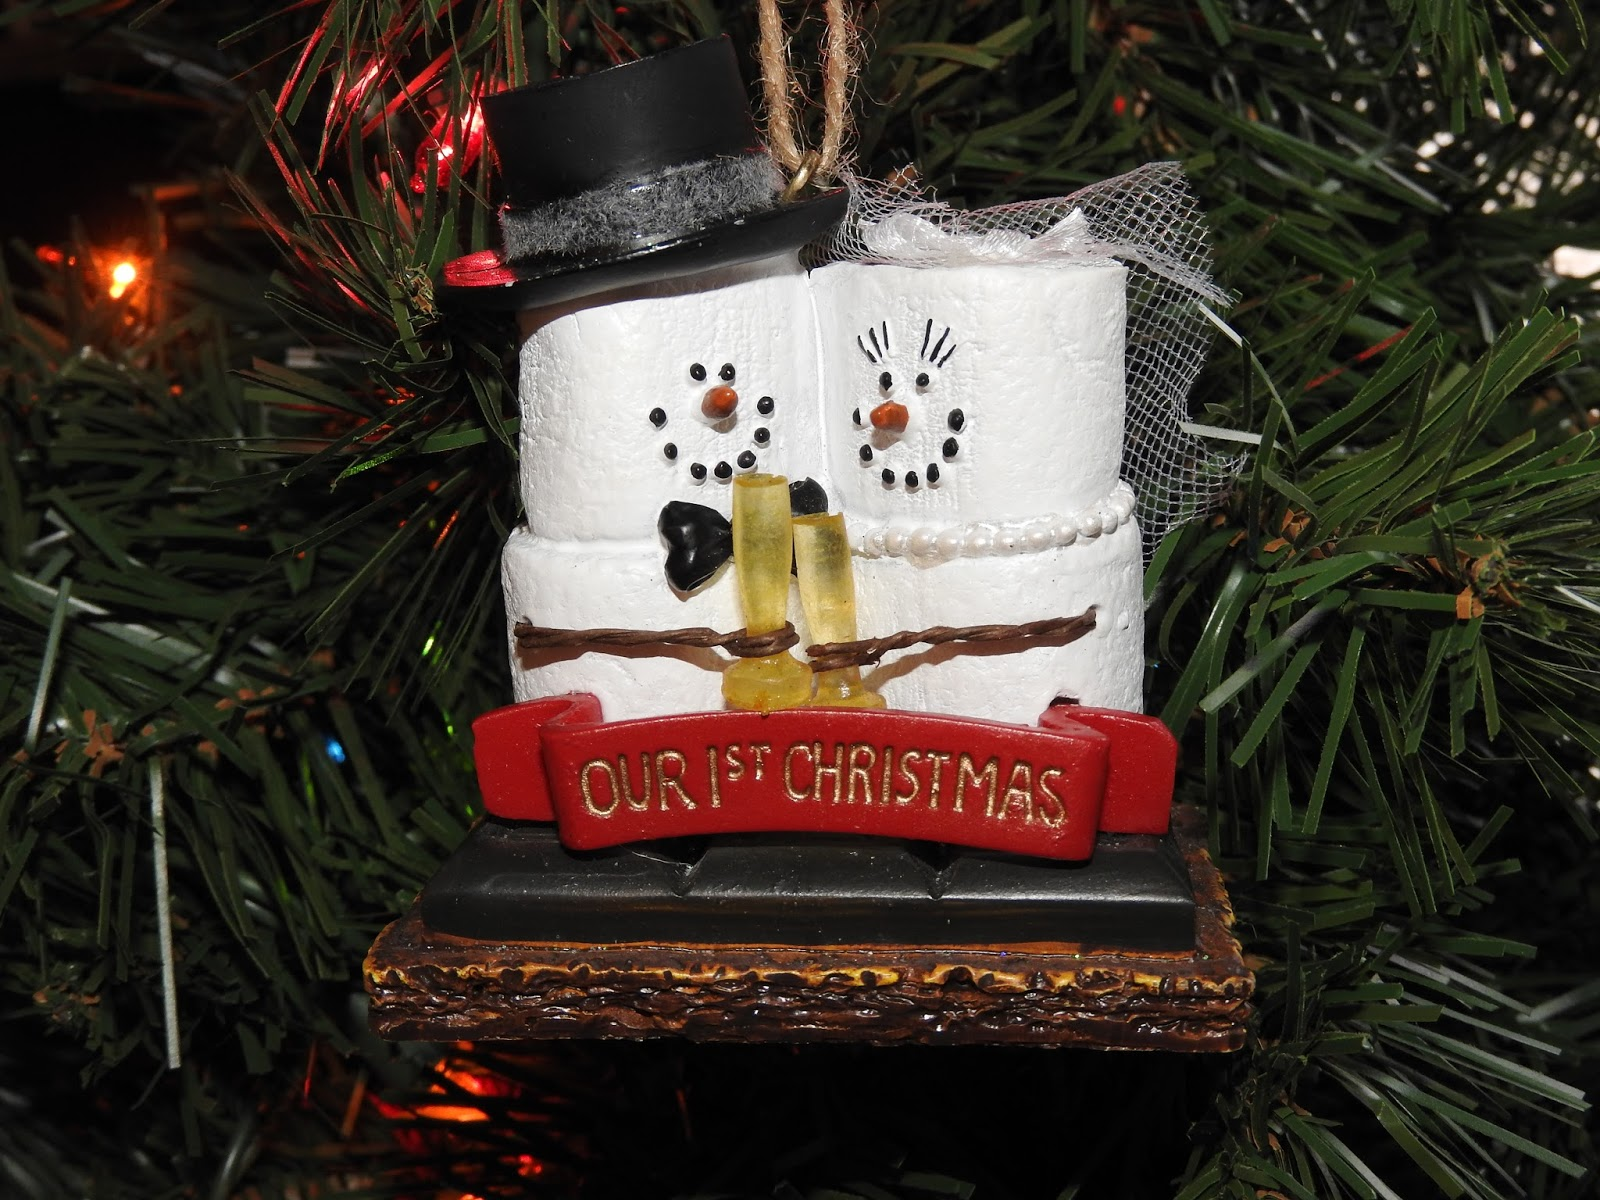 S mores ornaments - Mike Gave Me This Ornament Last Week When I Had Had A Rough Day Yes That Is A Newly Married Couple As A S More There Is Nothing I Love More Than S Mores